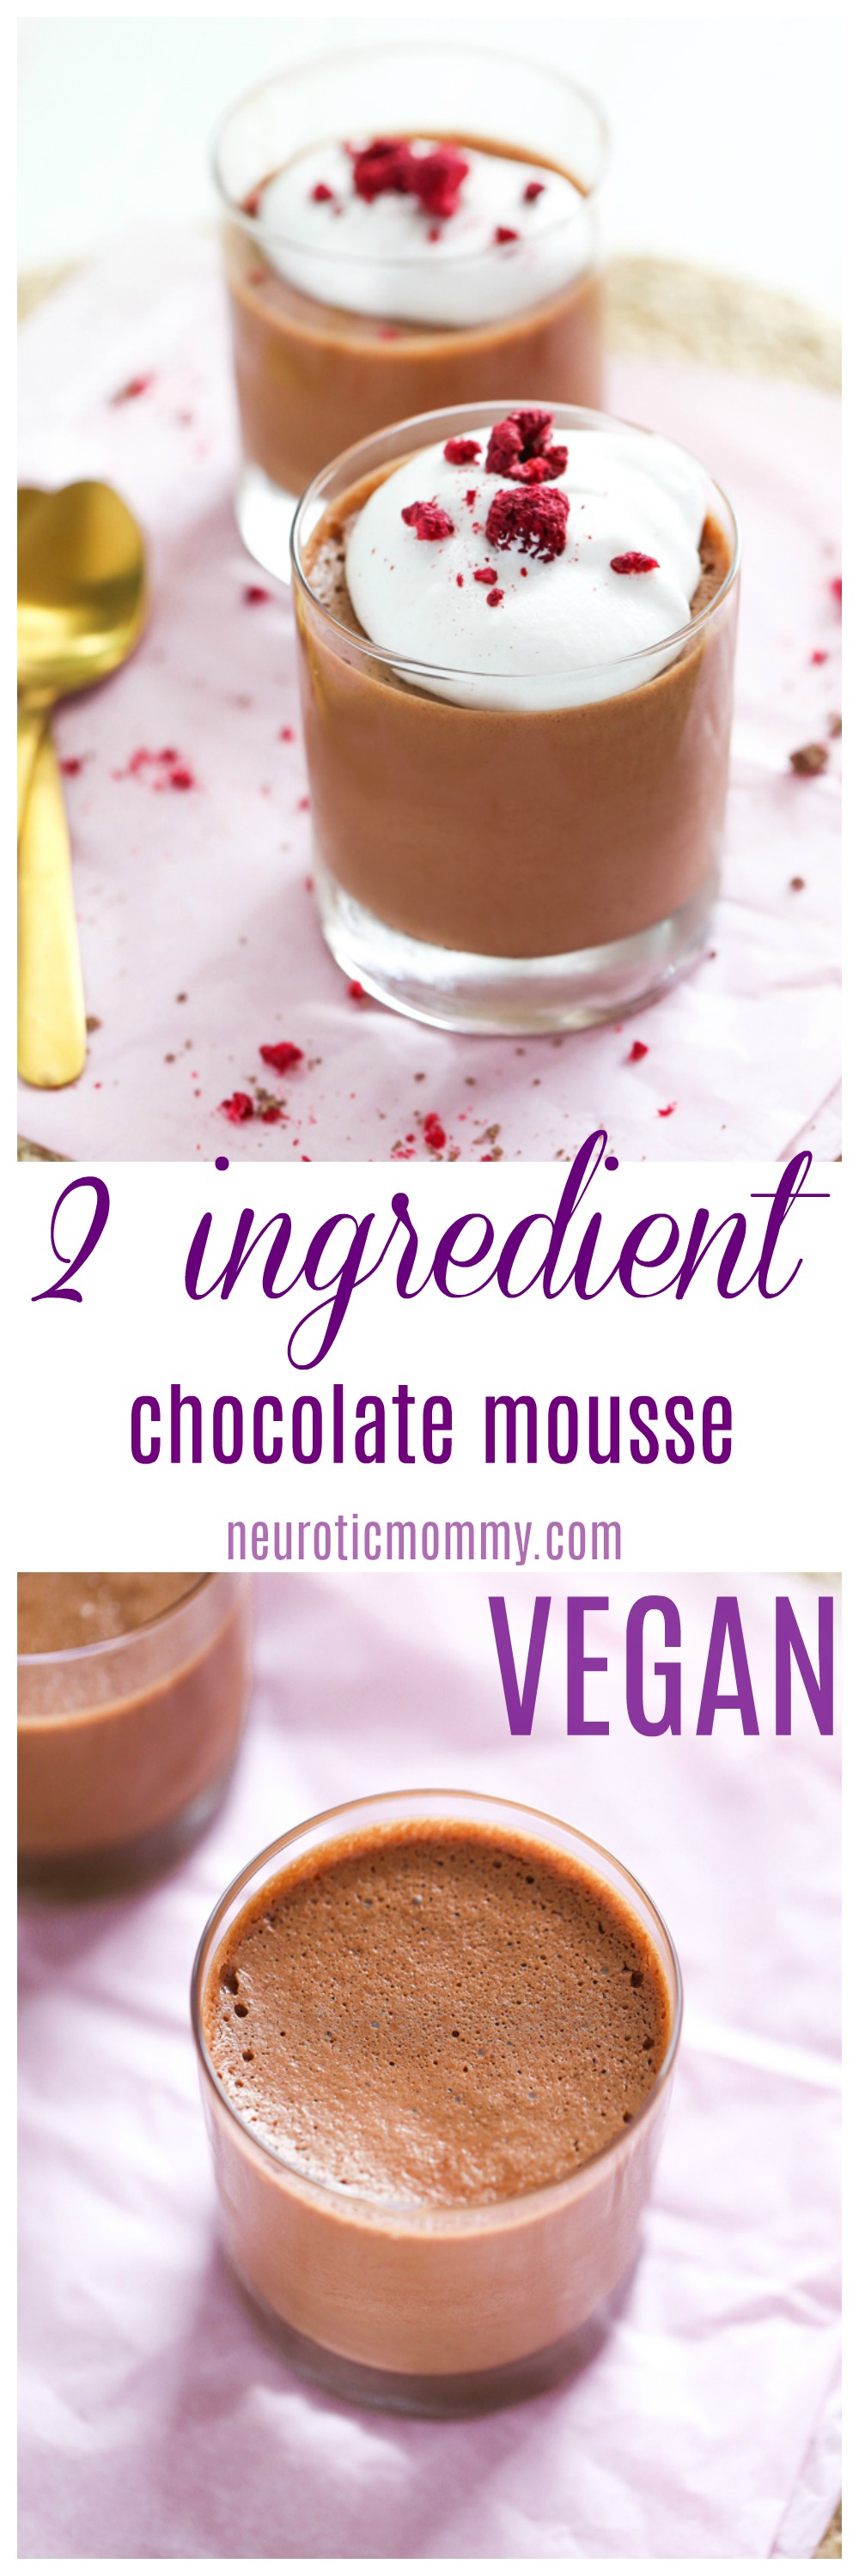 2 Ingredient Vegan Chocolate Mousse - Made with aquafaba this creamy & delicious treat is made with only 2 healthy ingredients. The perfect chocolate snack! NeuroticMommy.com #vegansnacks #veganmousse, #chocolatemousse, #aquafaba